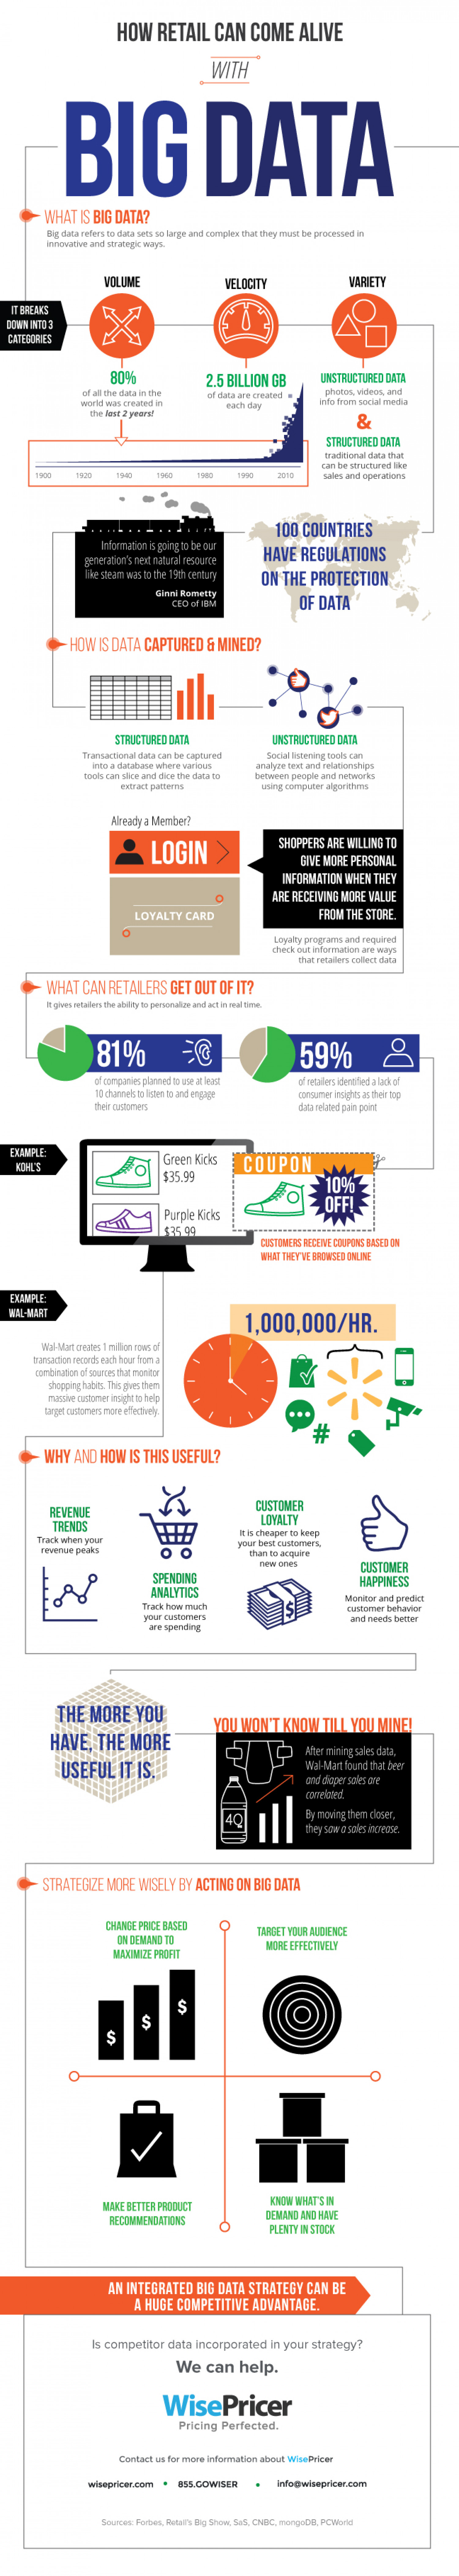 How Retail Can Come Alive with Big Data Infographic